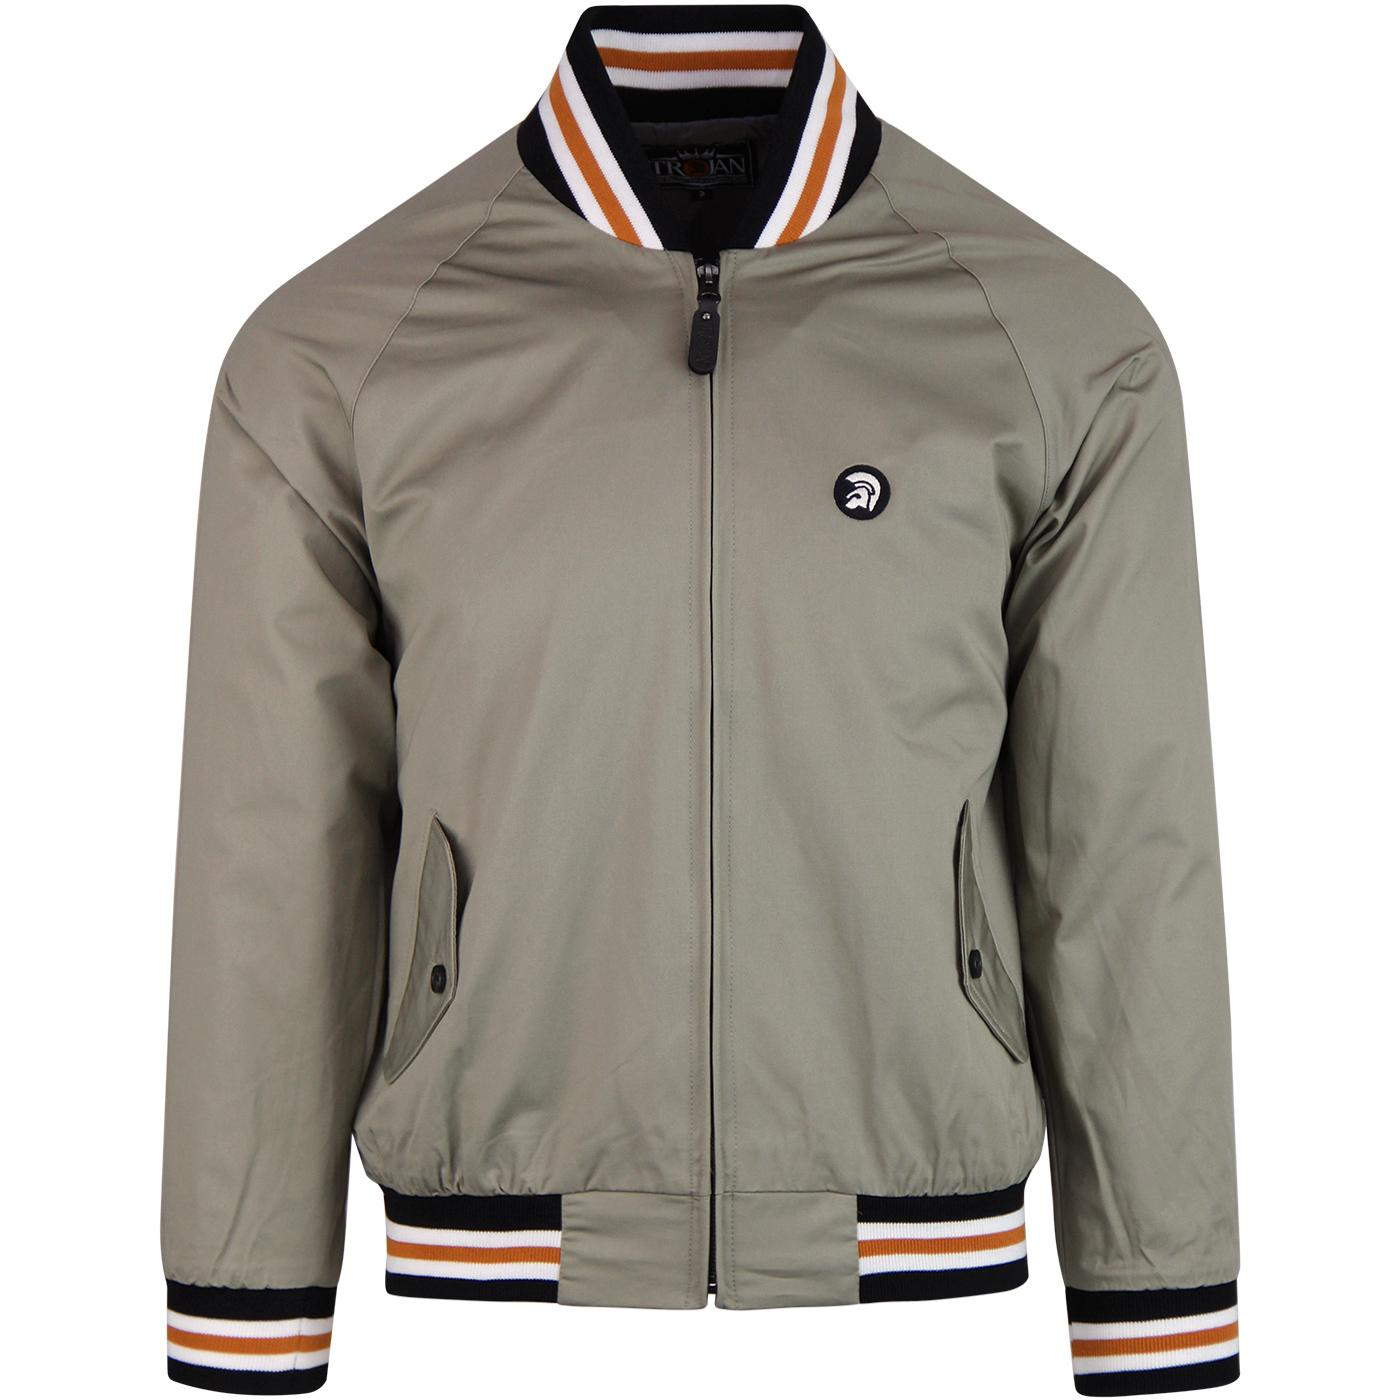 TROJAN RECORDS Retro Mod Monkey Jacket (Sage)